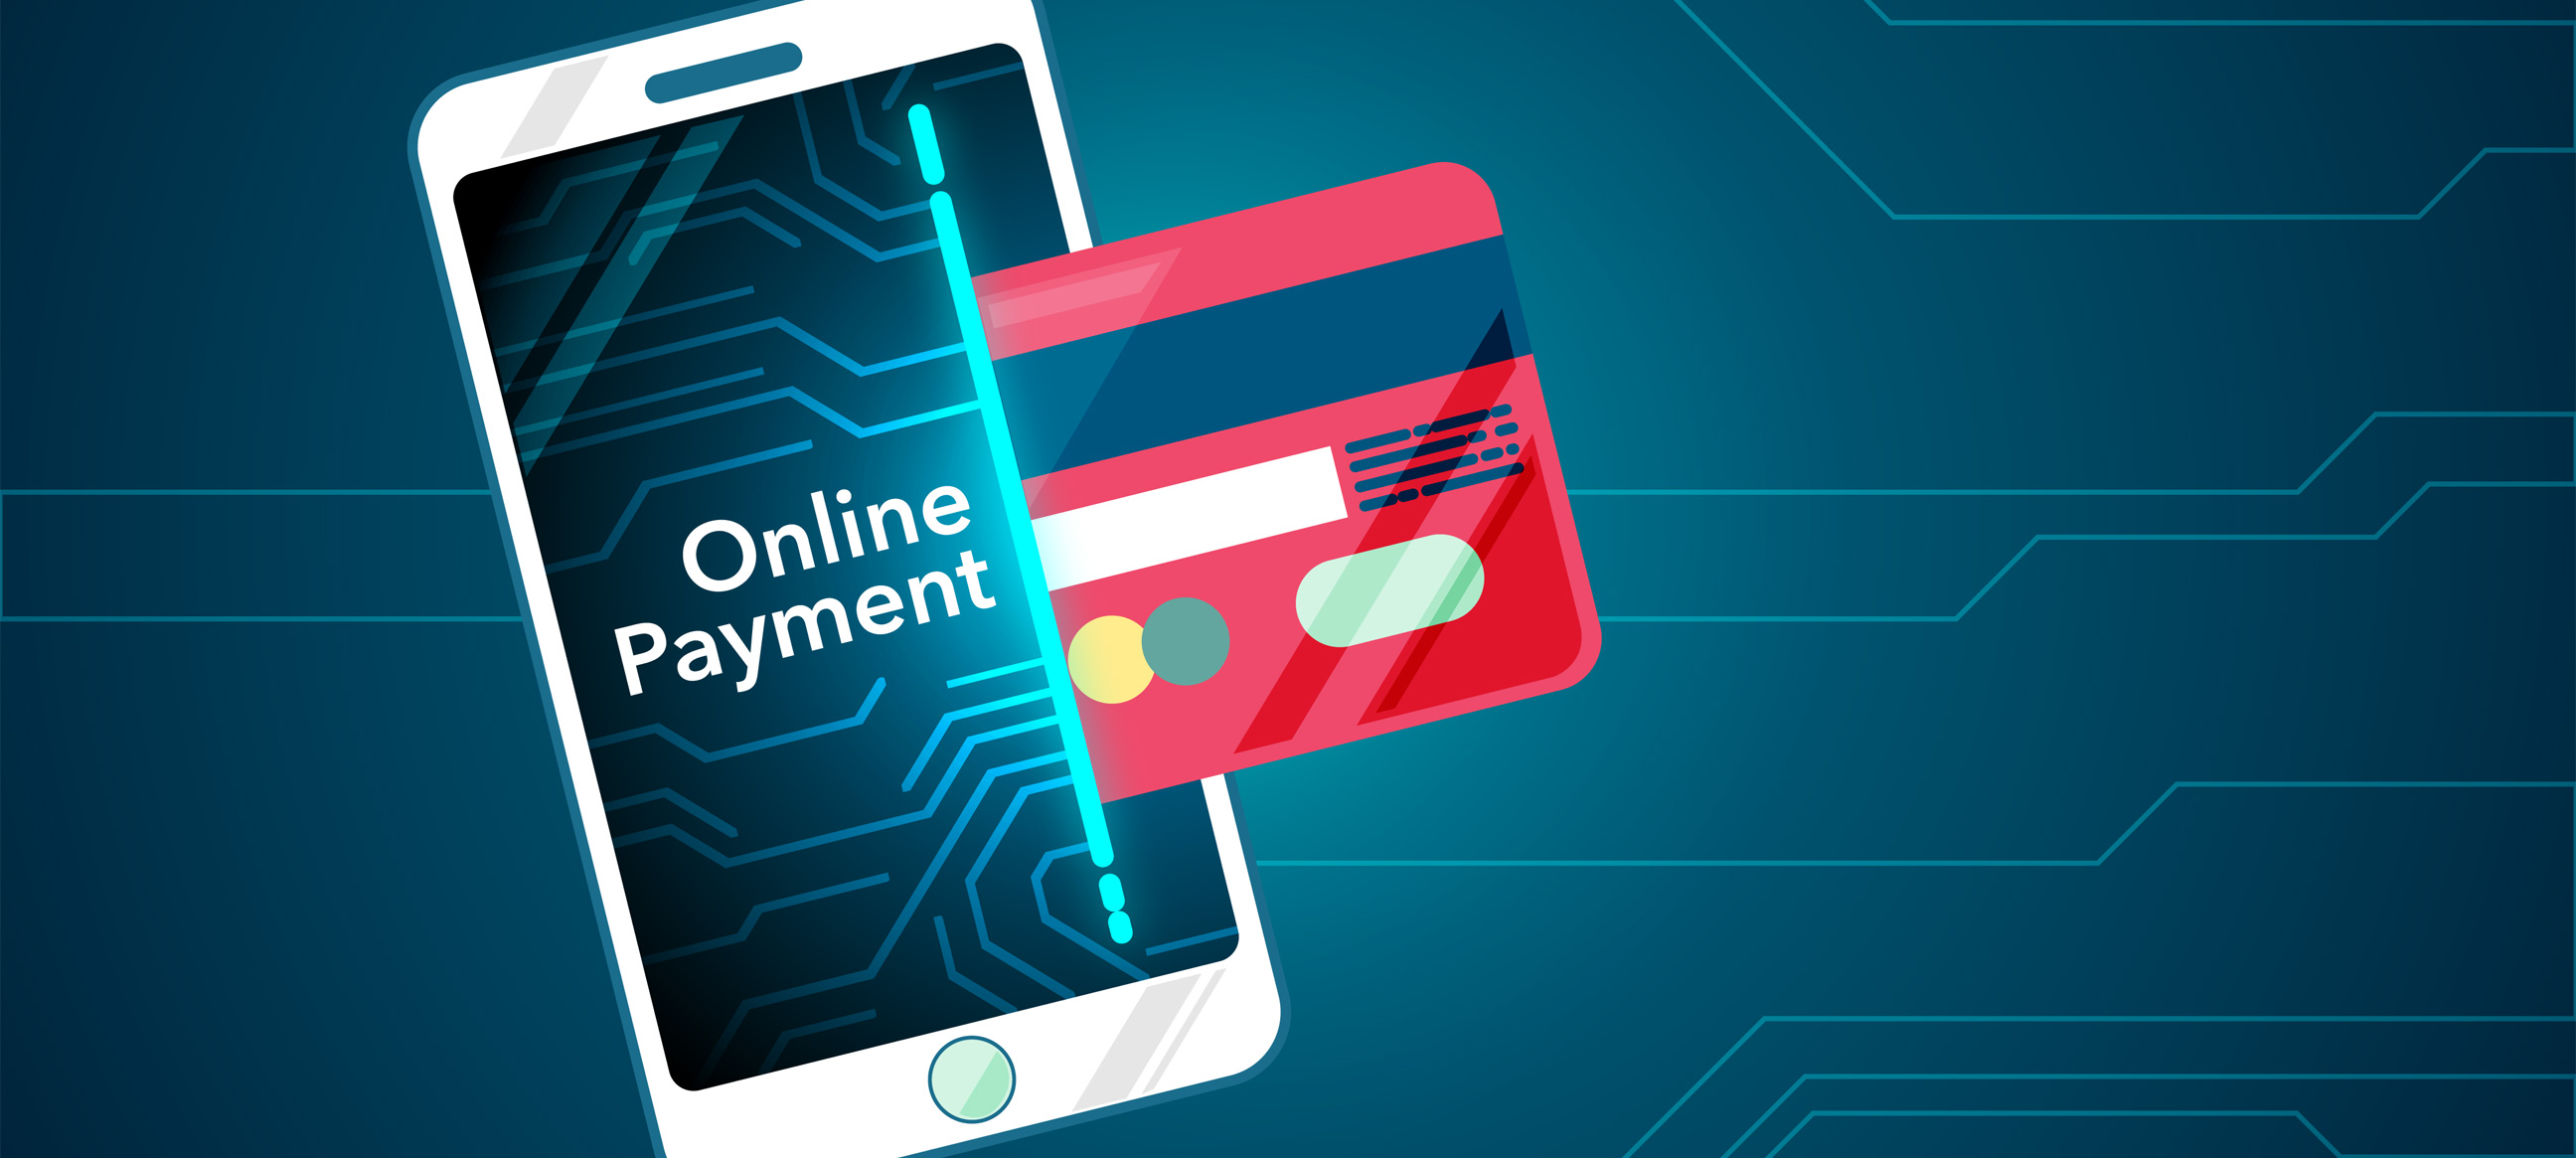 Changes to Online Payment Processing - Co-op Academy Swinton